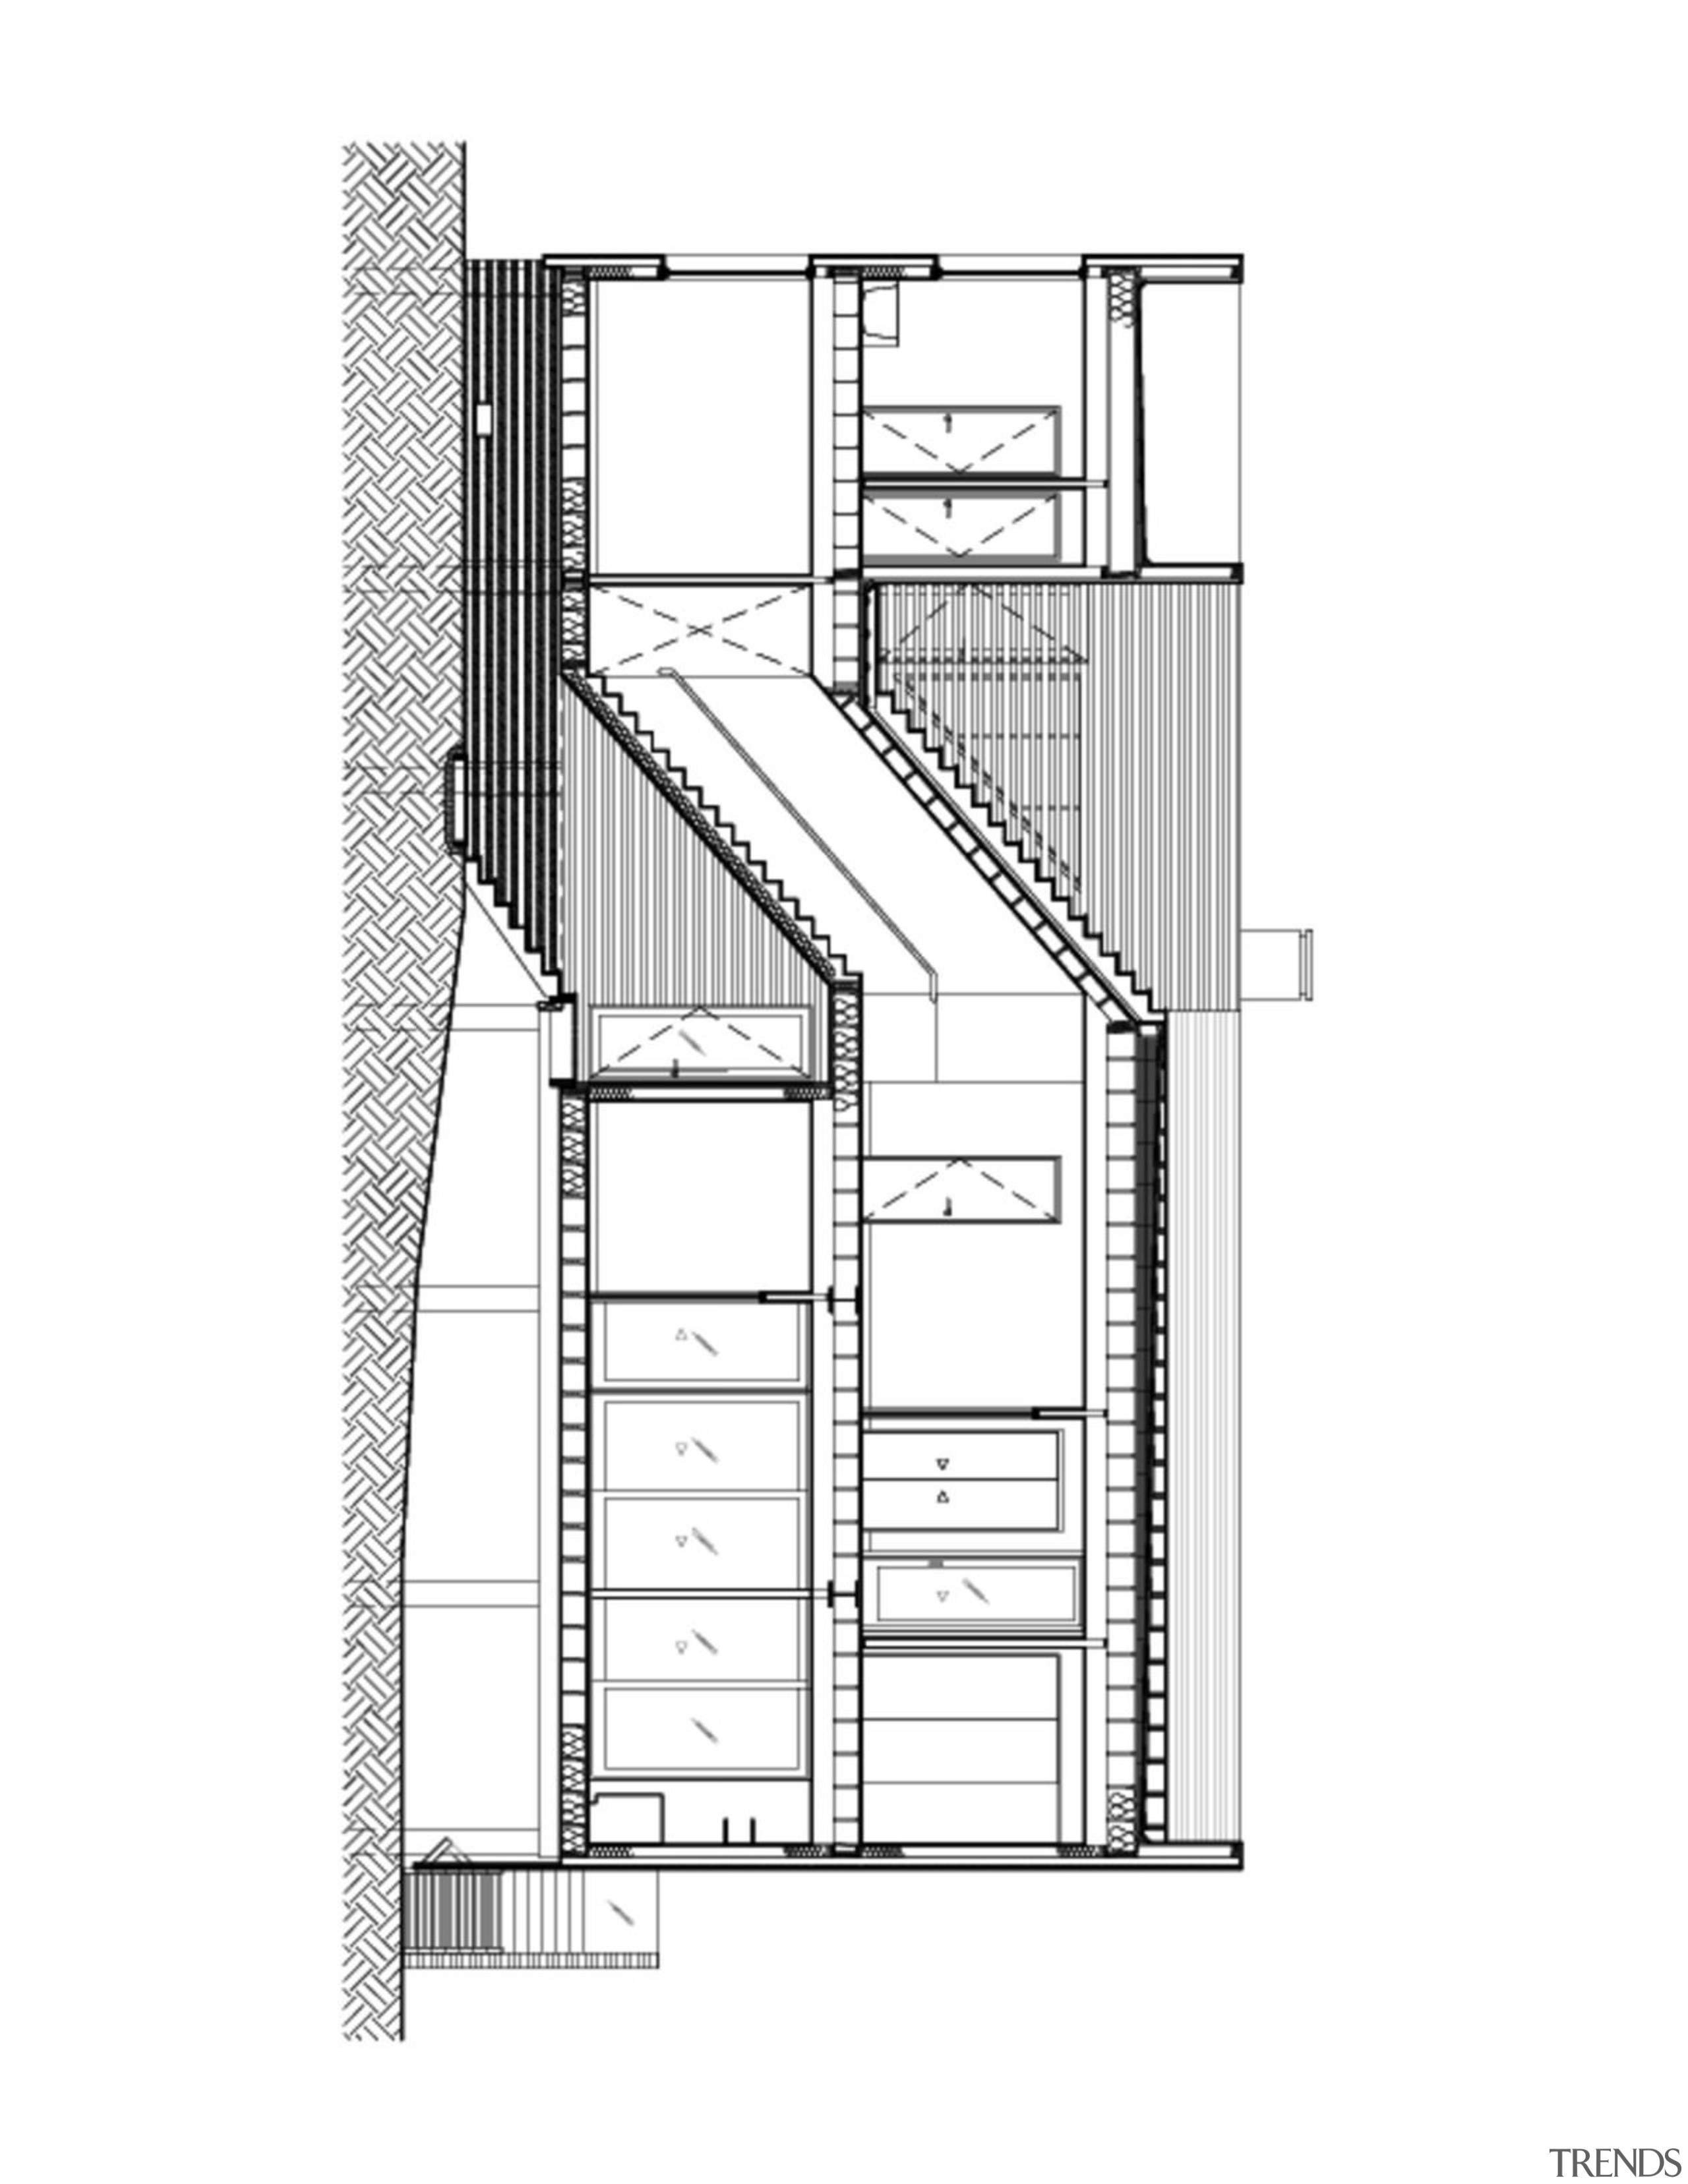 A plan for the home - A plan angle, architecture, area, black and white, design, diagram, drawing, elevation, facade, floor plan, font, line, plan, product, product design, structure, white